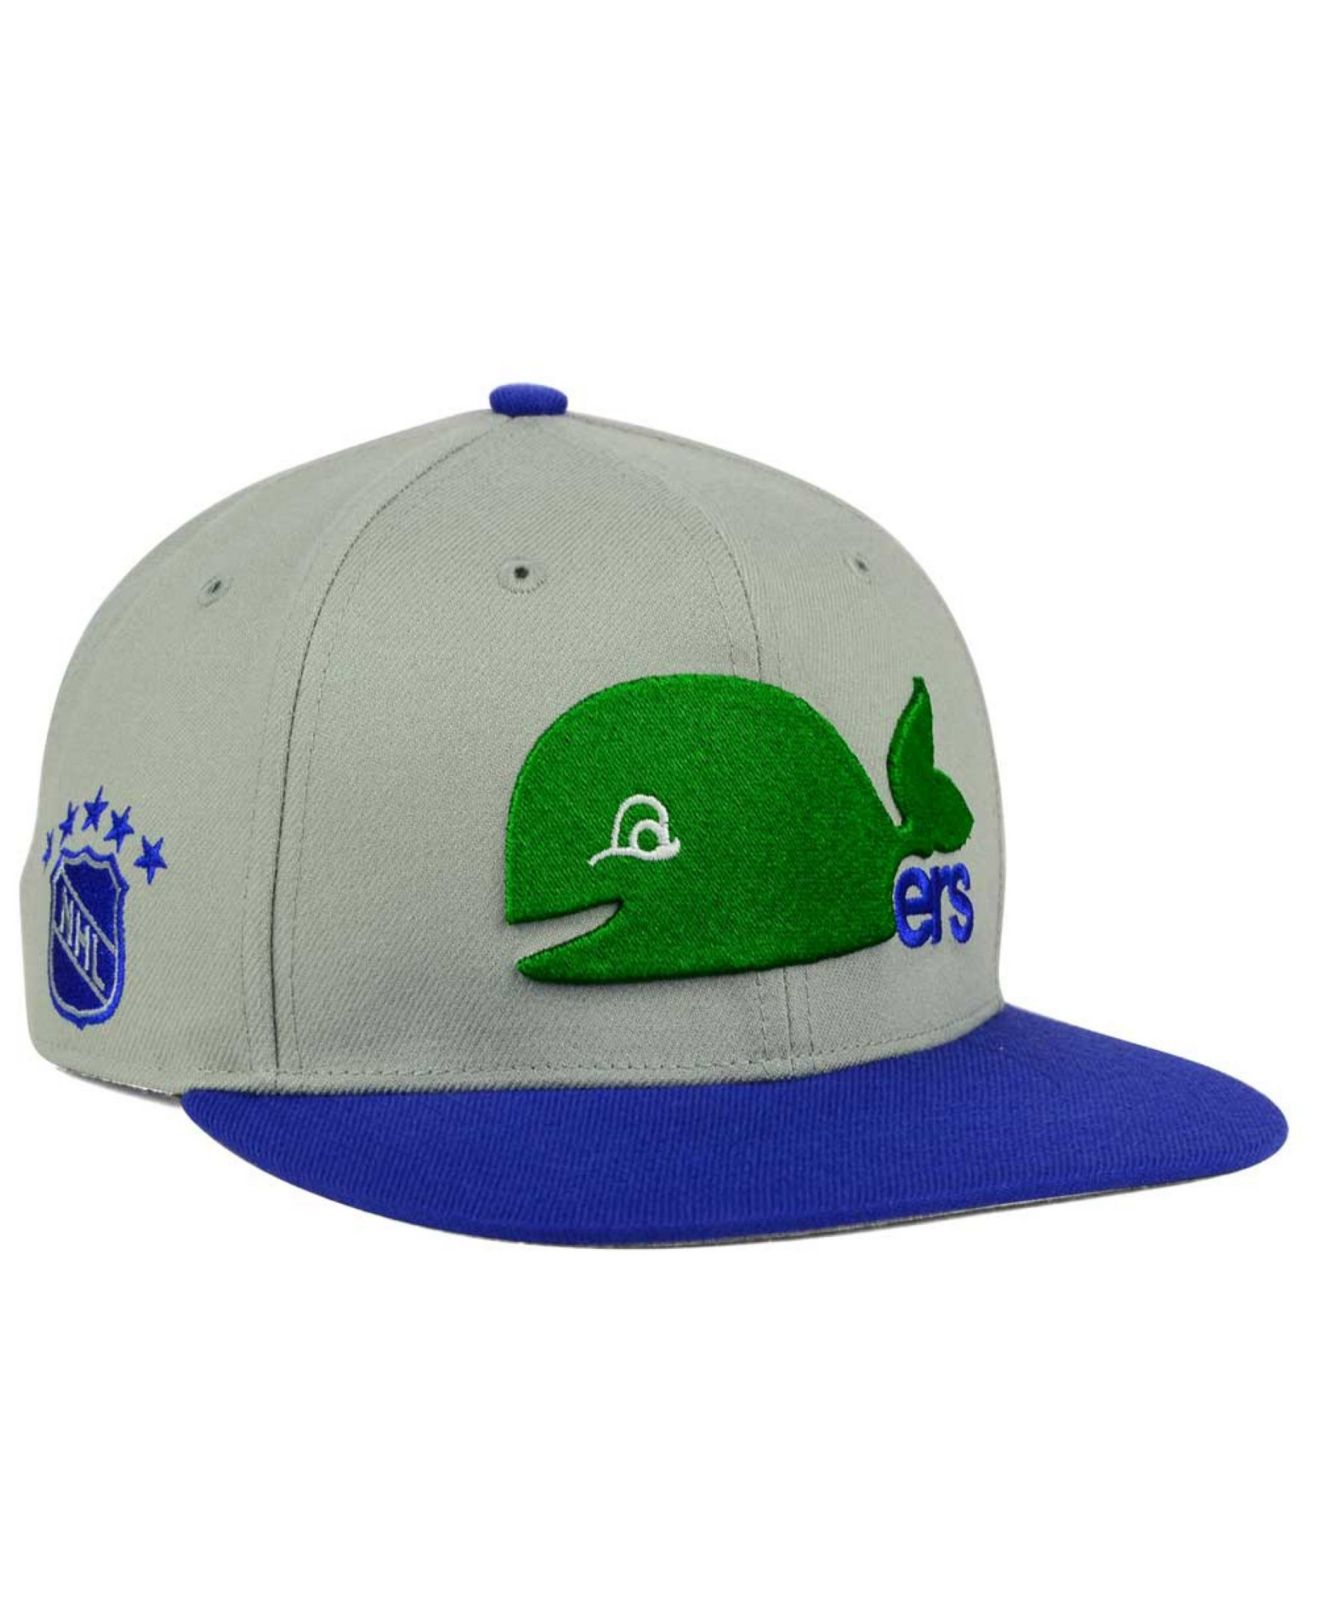 separation shoes 518cf e2fb1 47 Brand Hartford Whalers Sure Shot Snapback Cap in Green for Men - Lyst